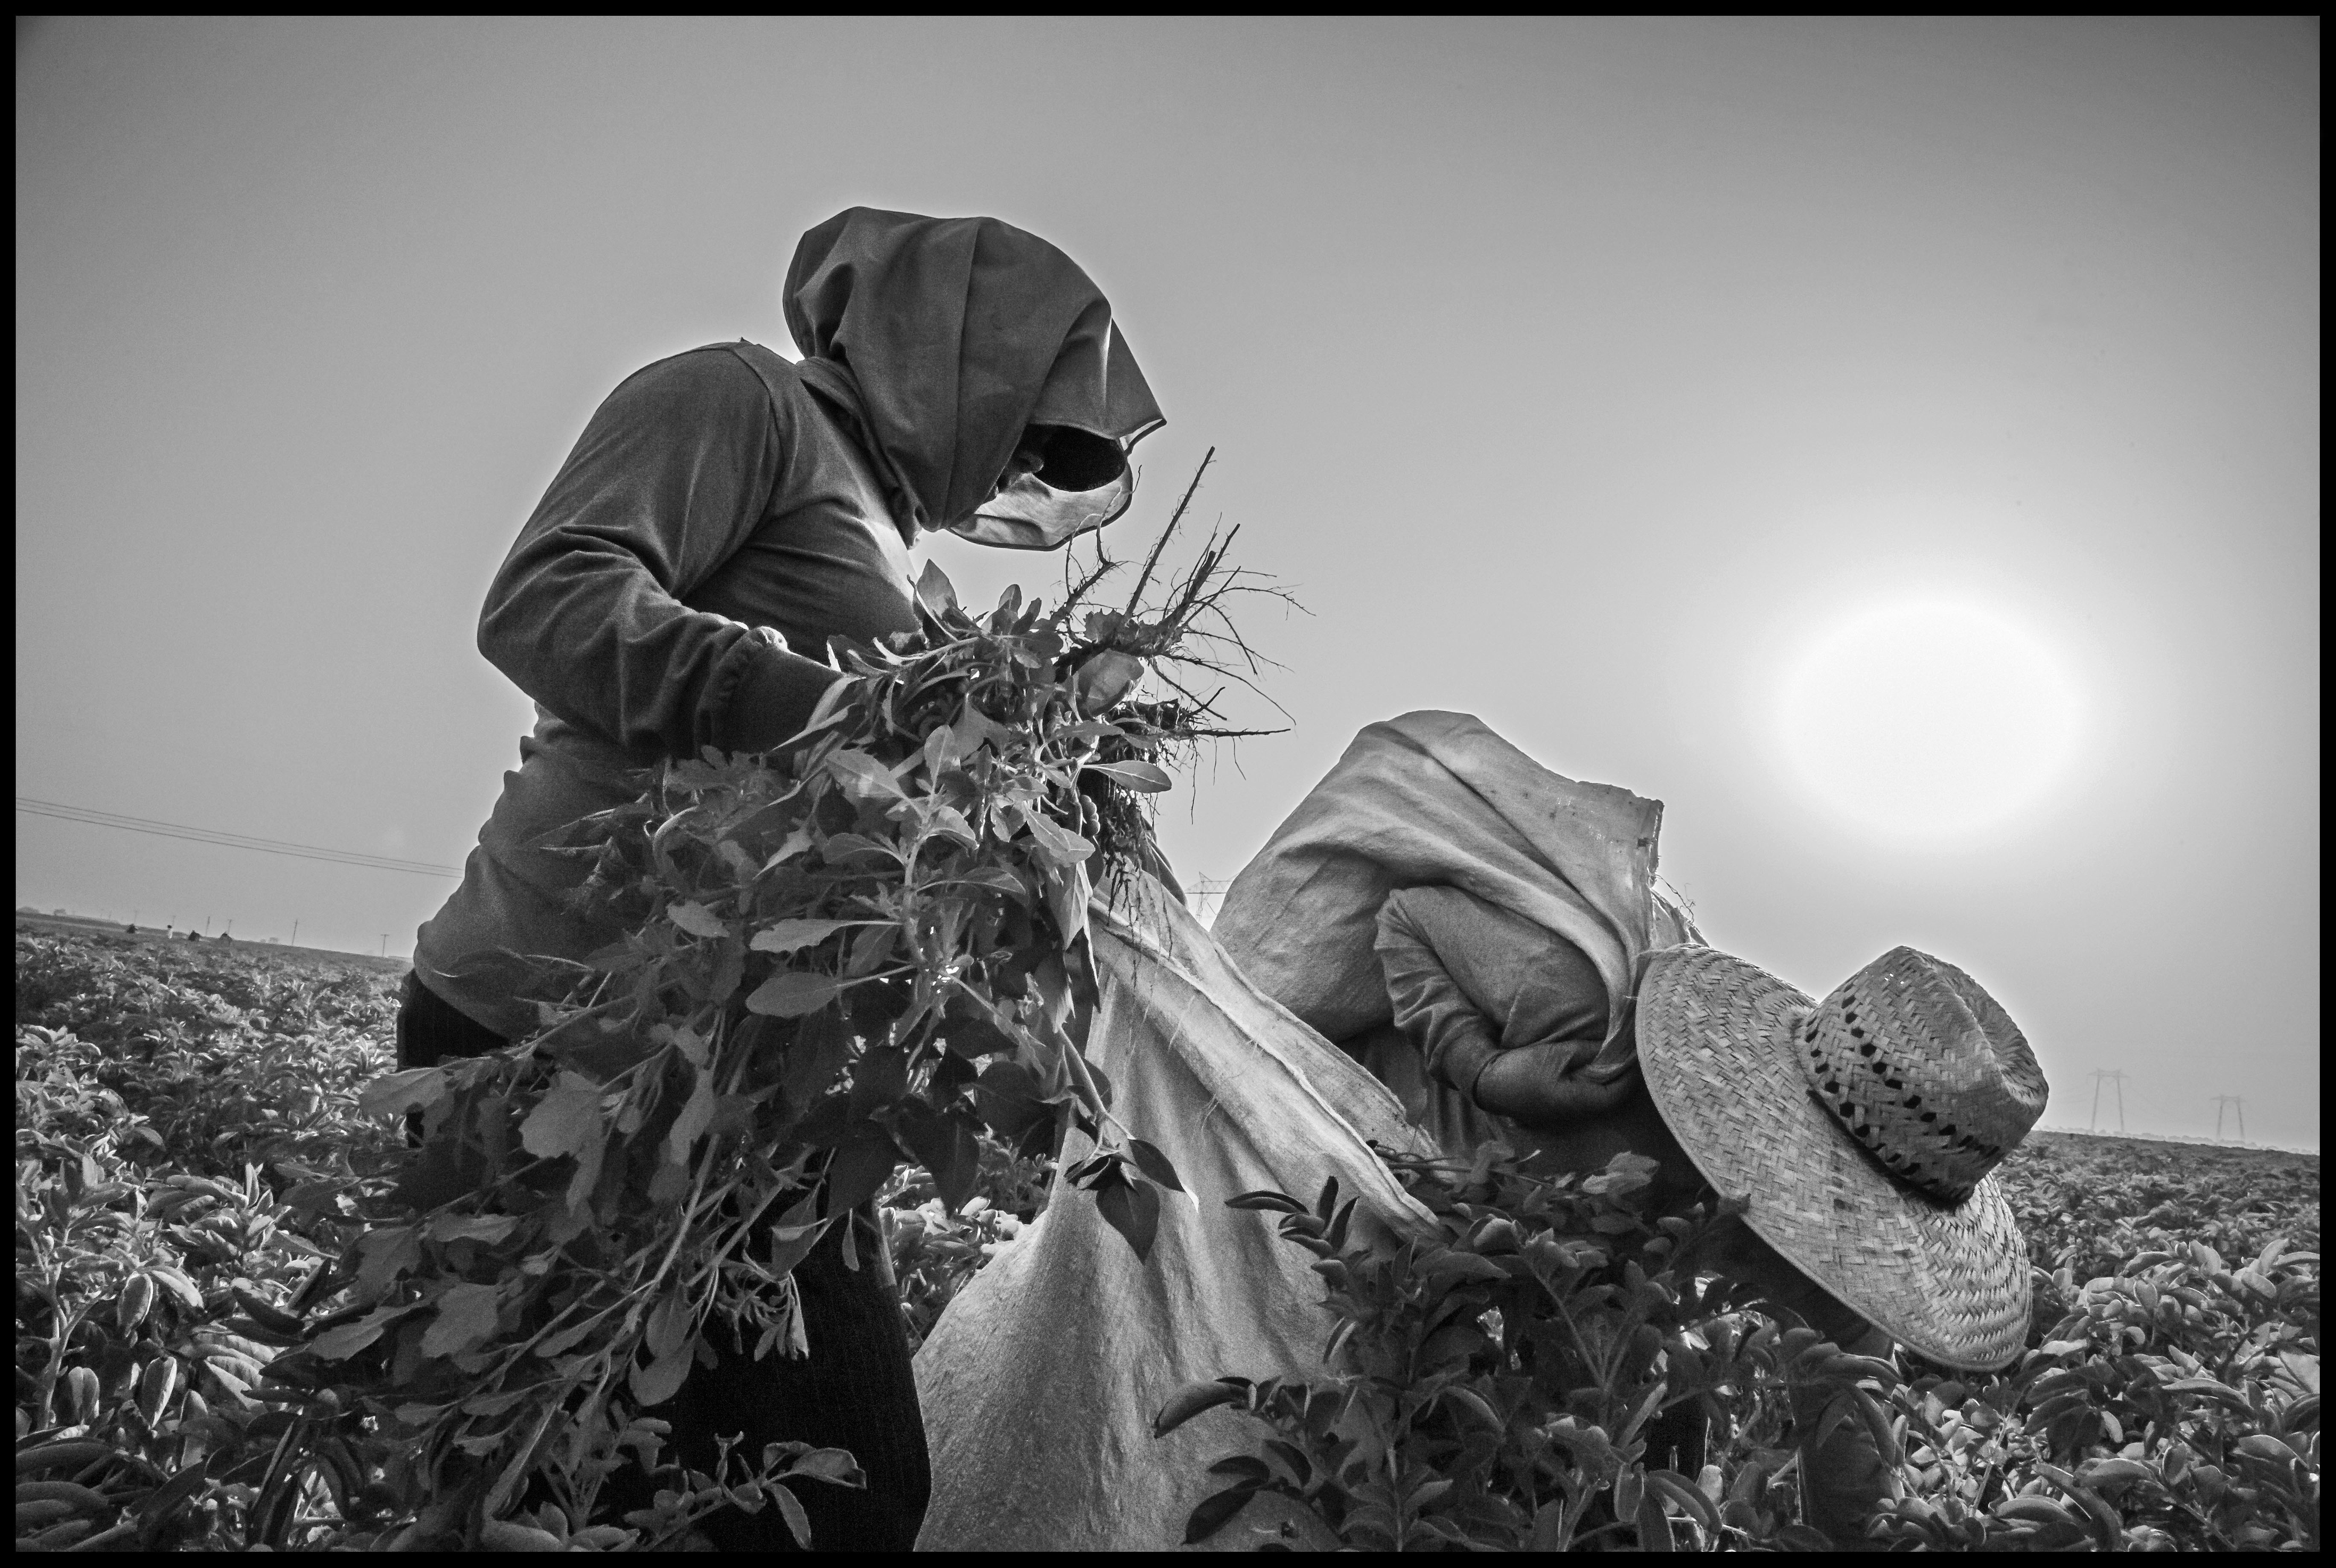 ARVIN, CA - Two farm workers pull weeds in a field of organic potatoes. By mid-afternoon the temperature is over 100 degrees. Workers wear layers of clothes as insulation against the heat.